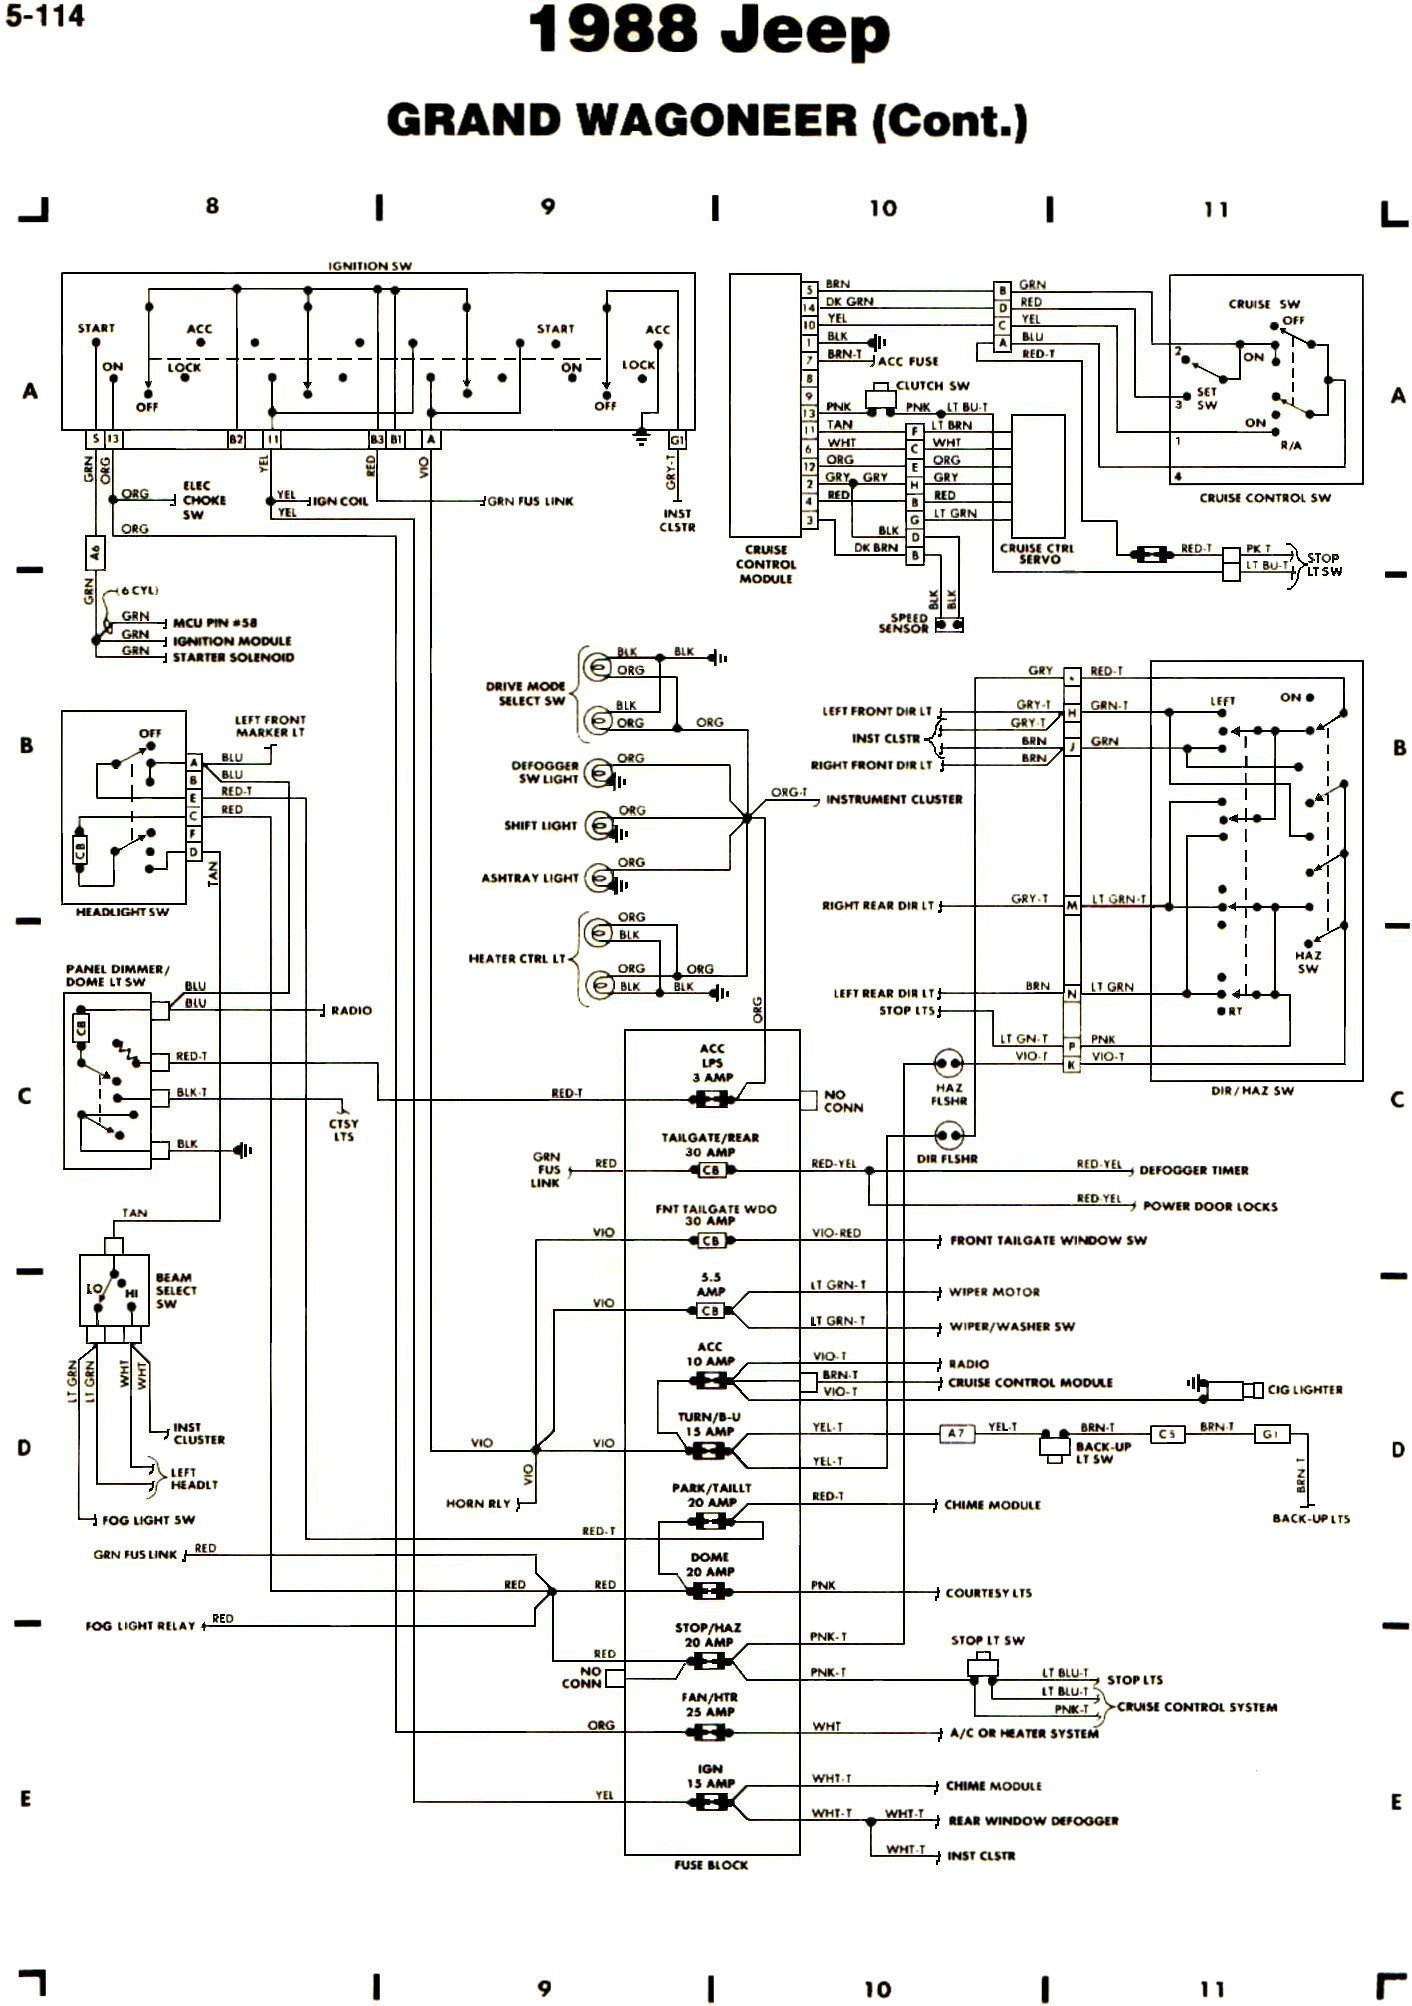 727 Transmission Backup Light Switch Wiring Diagram Libraries Chrysler Neutral Safety Library727